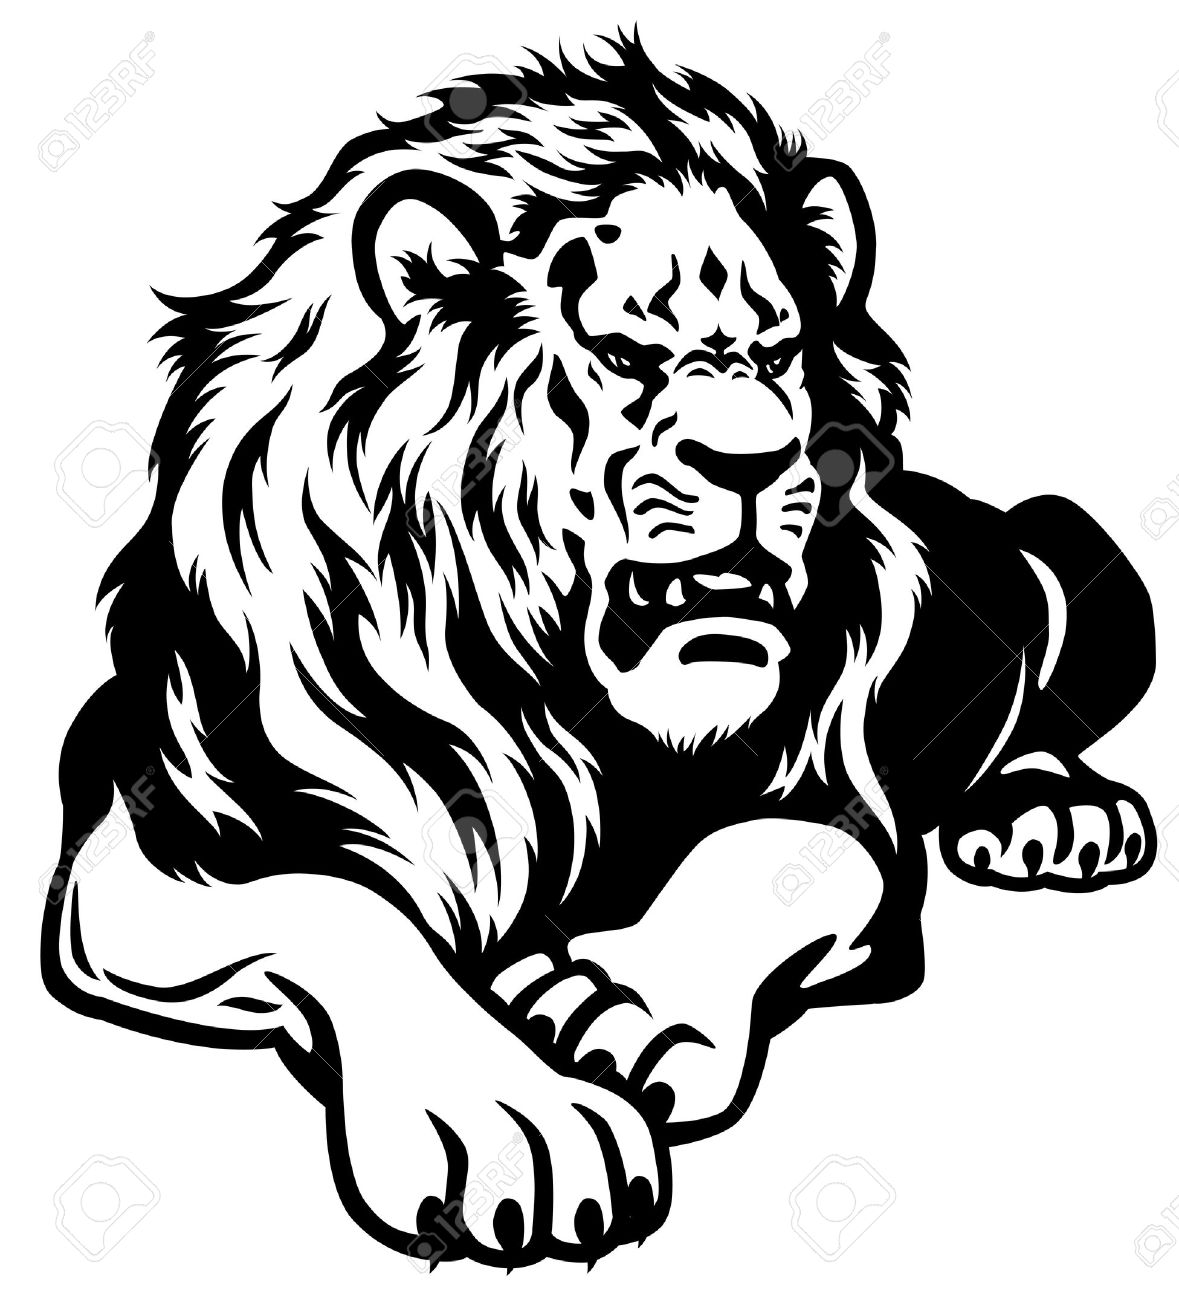 Lion black and white illustration stock vector 23013774